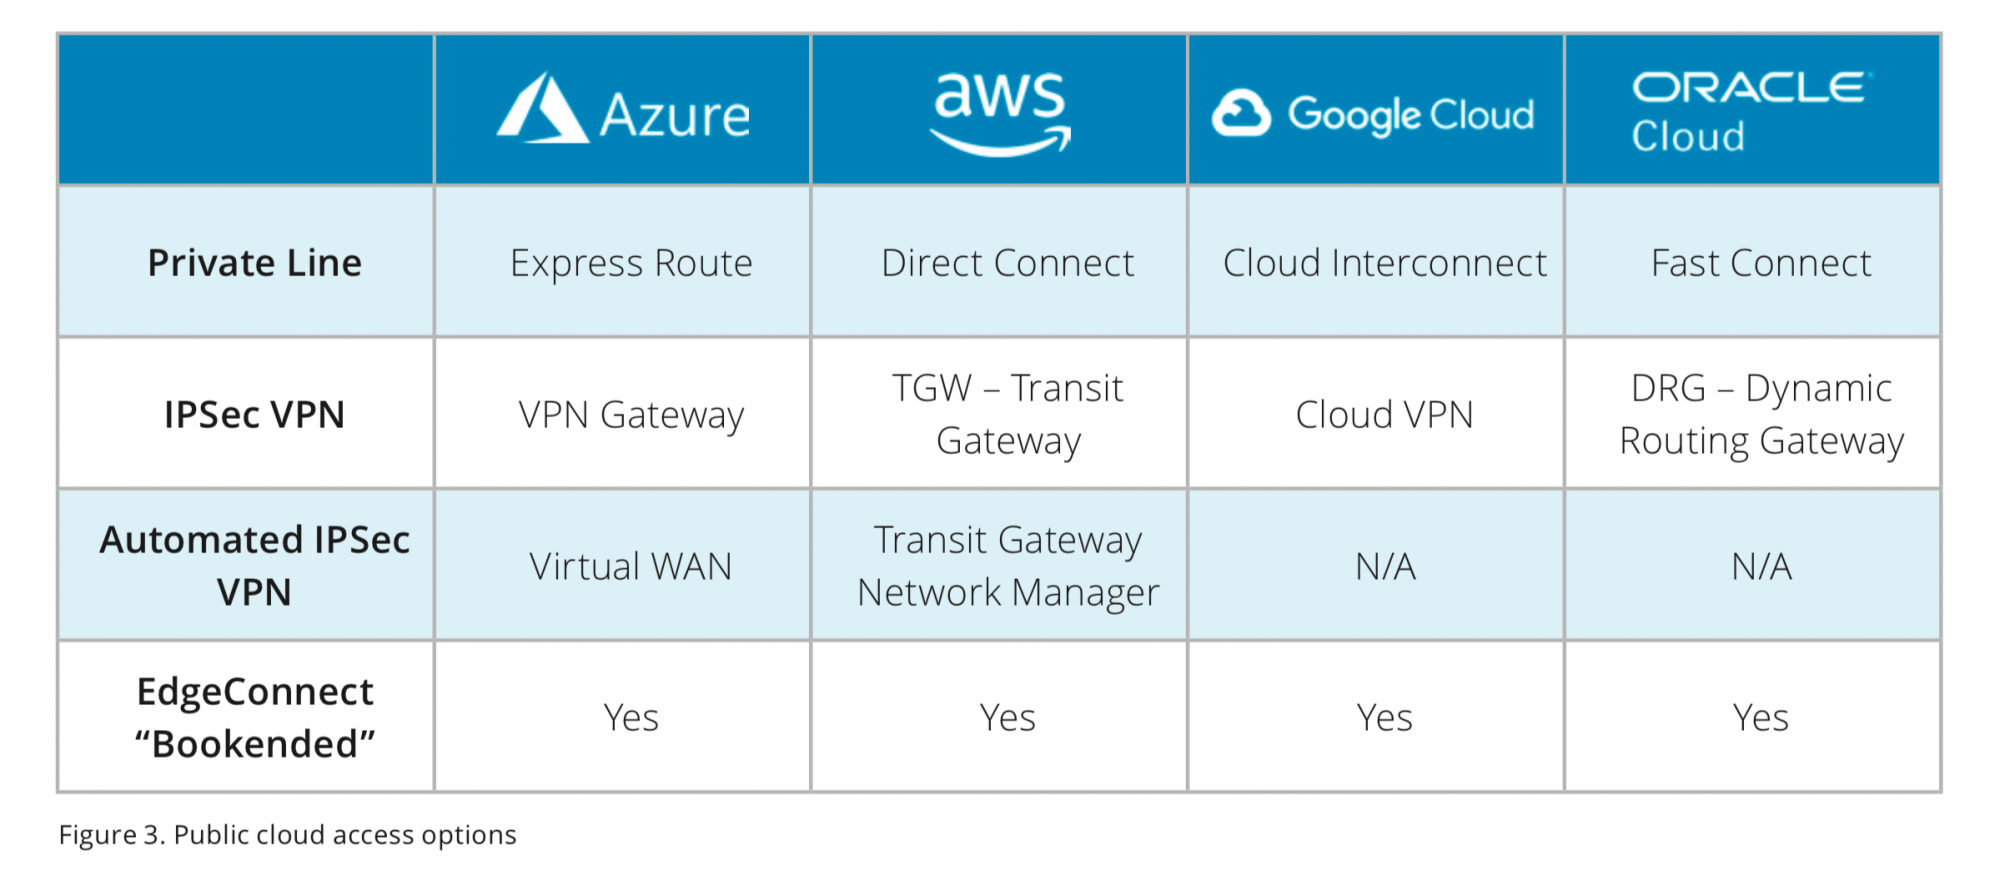 Figure 3. Public cloud access options